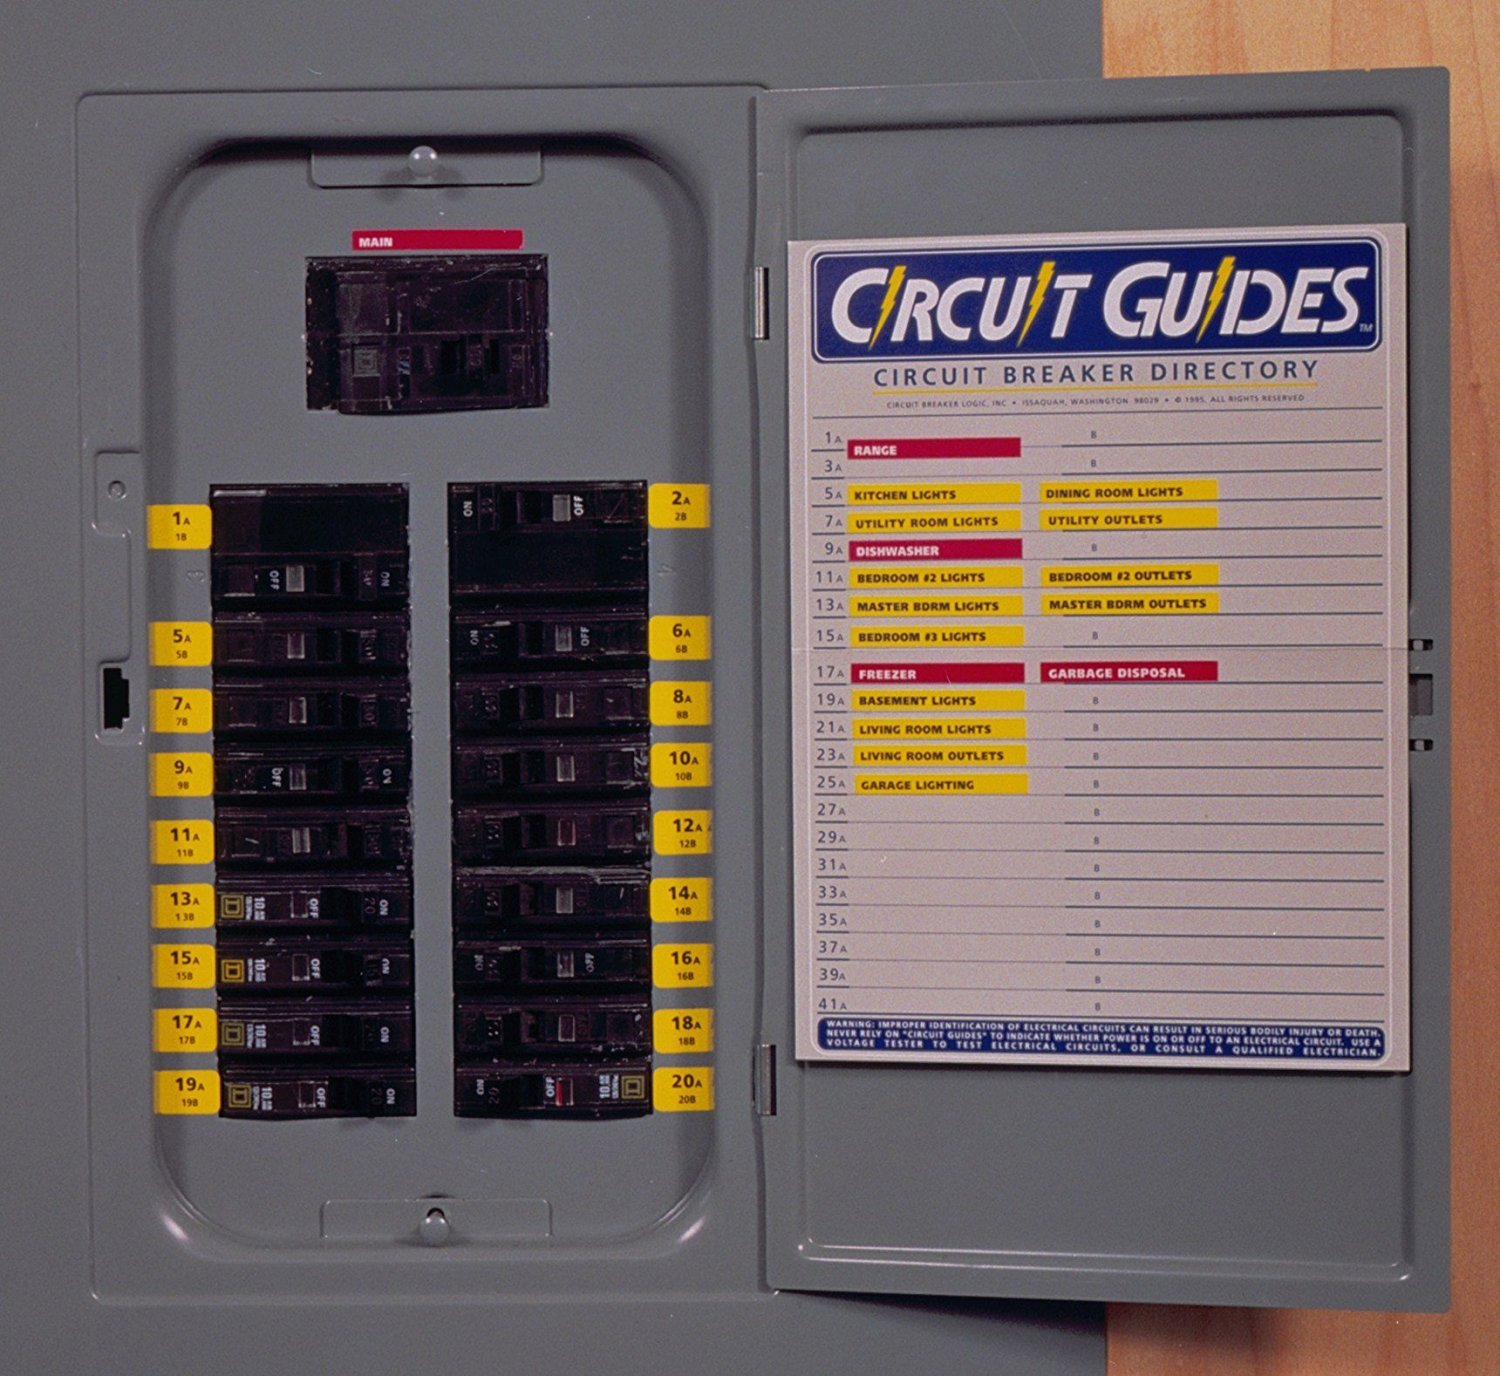 Best Rated In Circuit Breaker Panels Helpful Customer Reviews Panel Mount 18 Ways Distribution Box Electric Plastic You Get 149 Identifier Labels Plus A